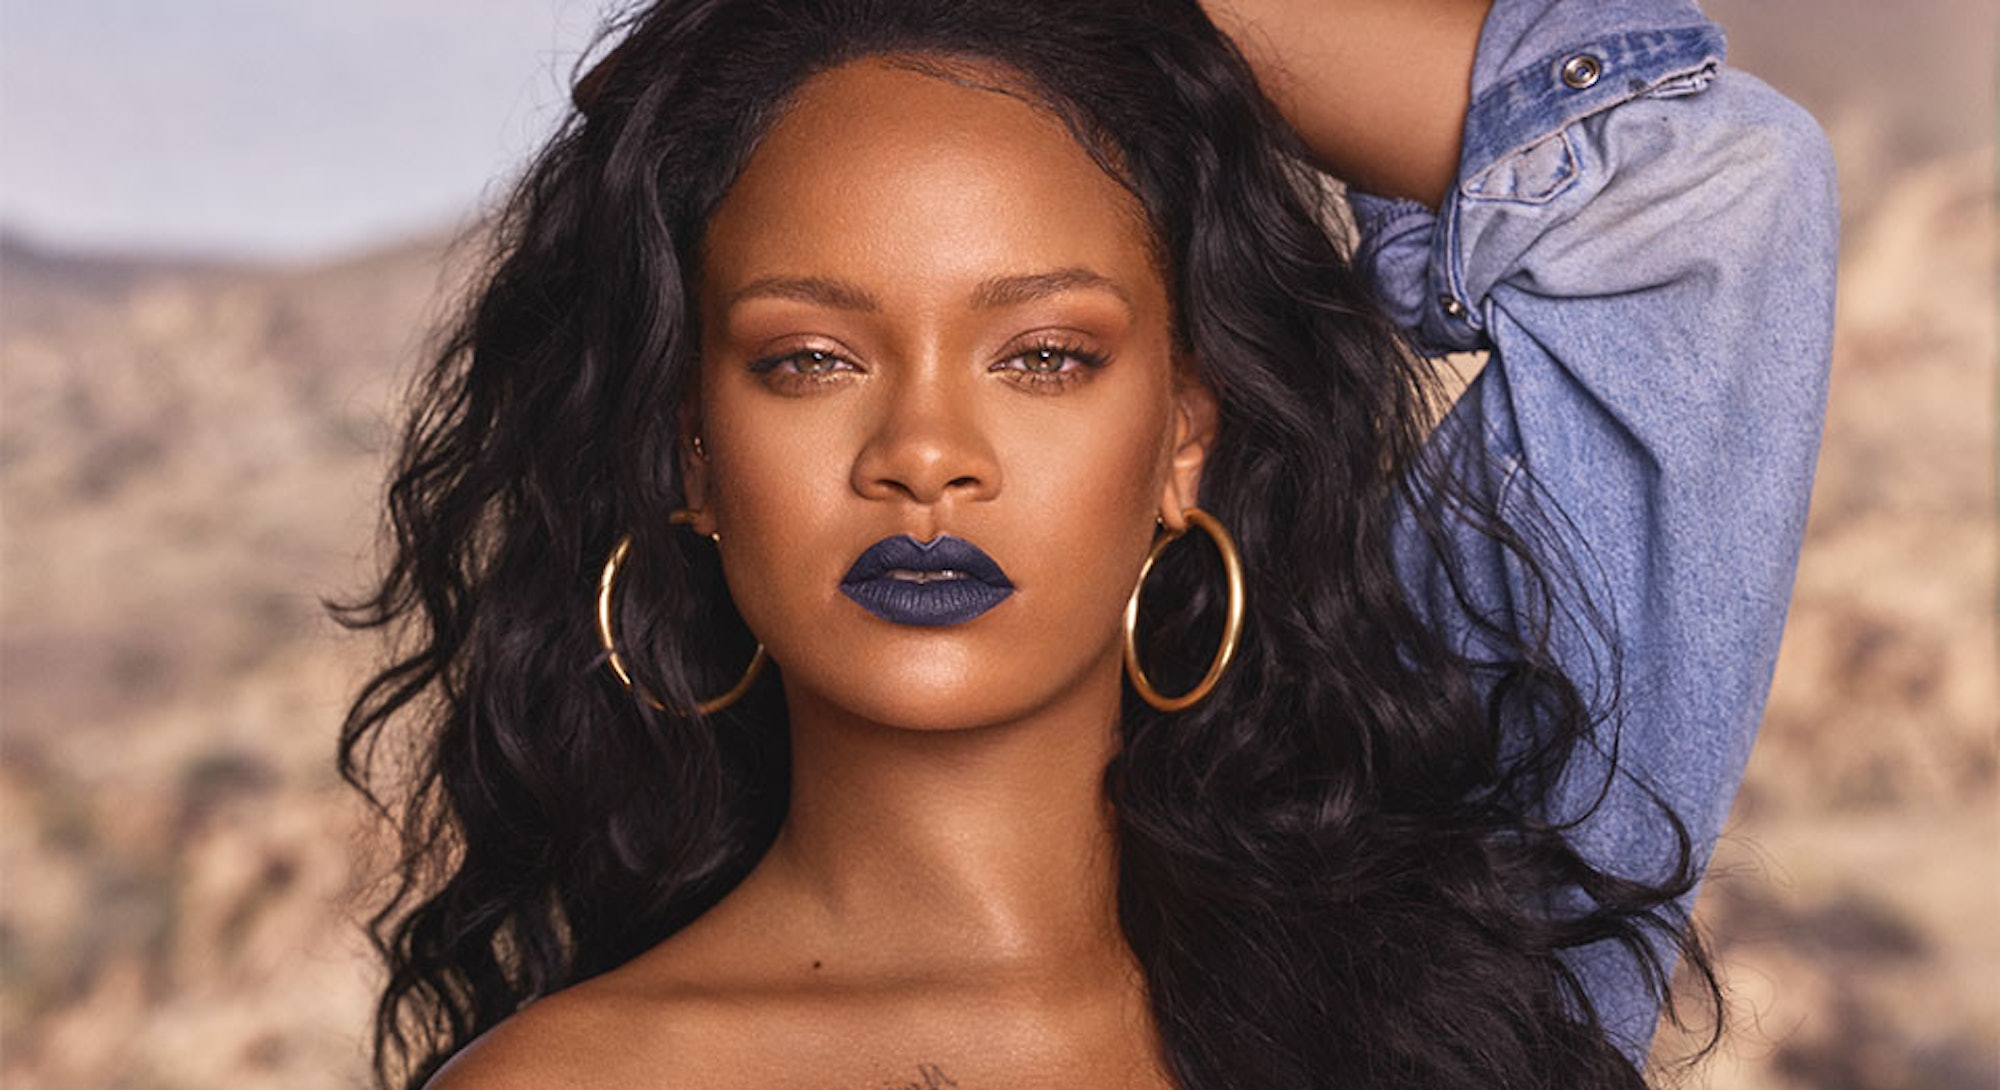 Rihanna with dark blue lipstick and gold hoop earrings for a Fenty Beauty campaign.